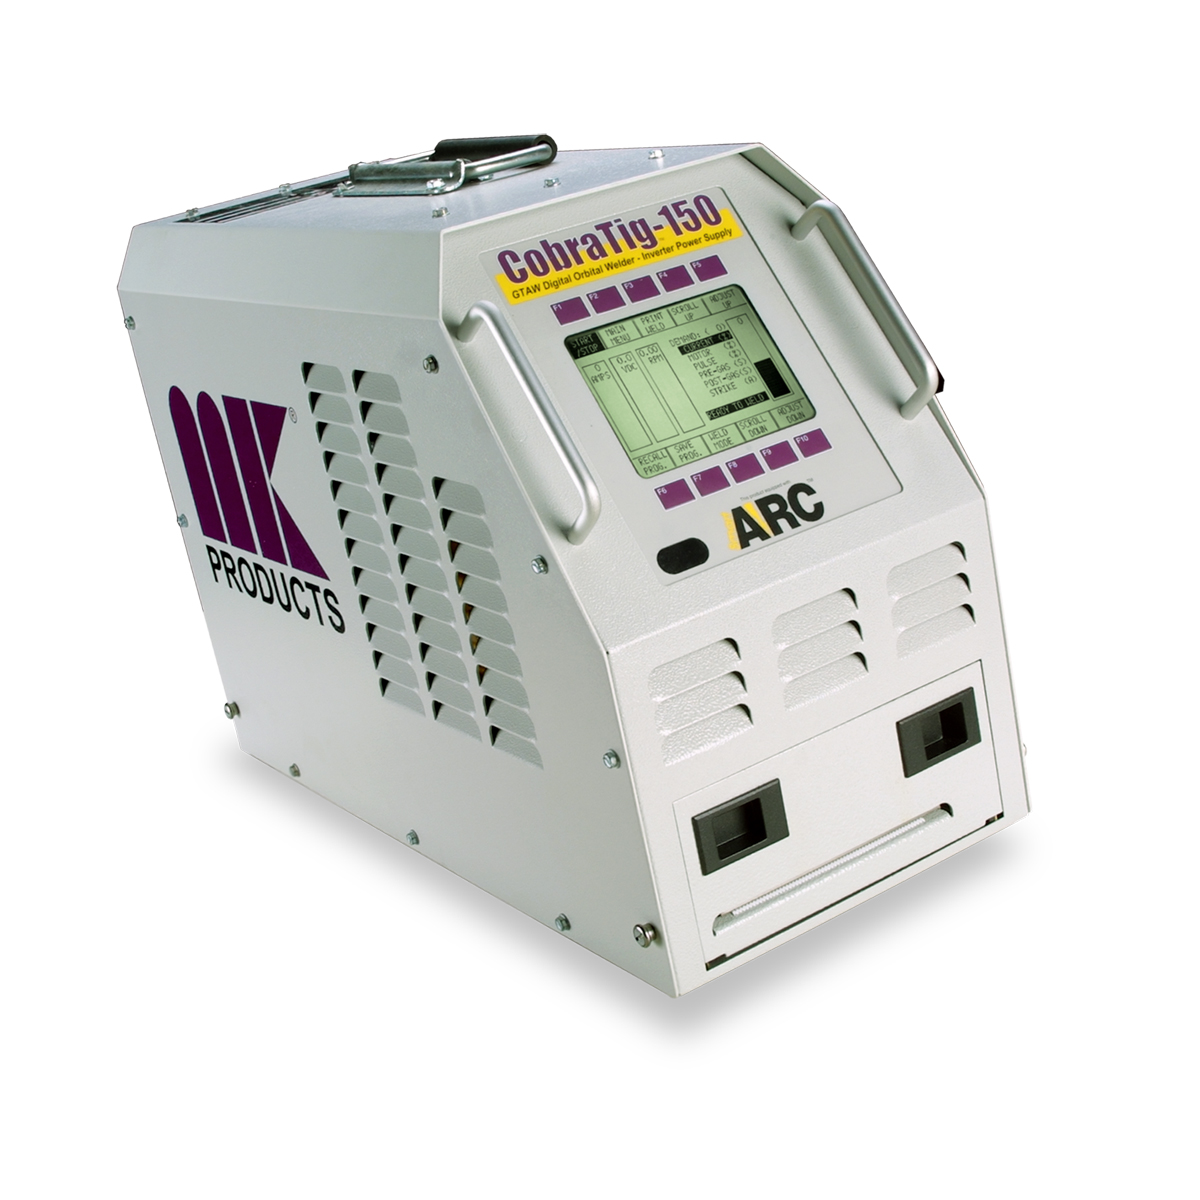 Picture of MK Products CobraTig® 150